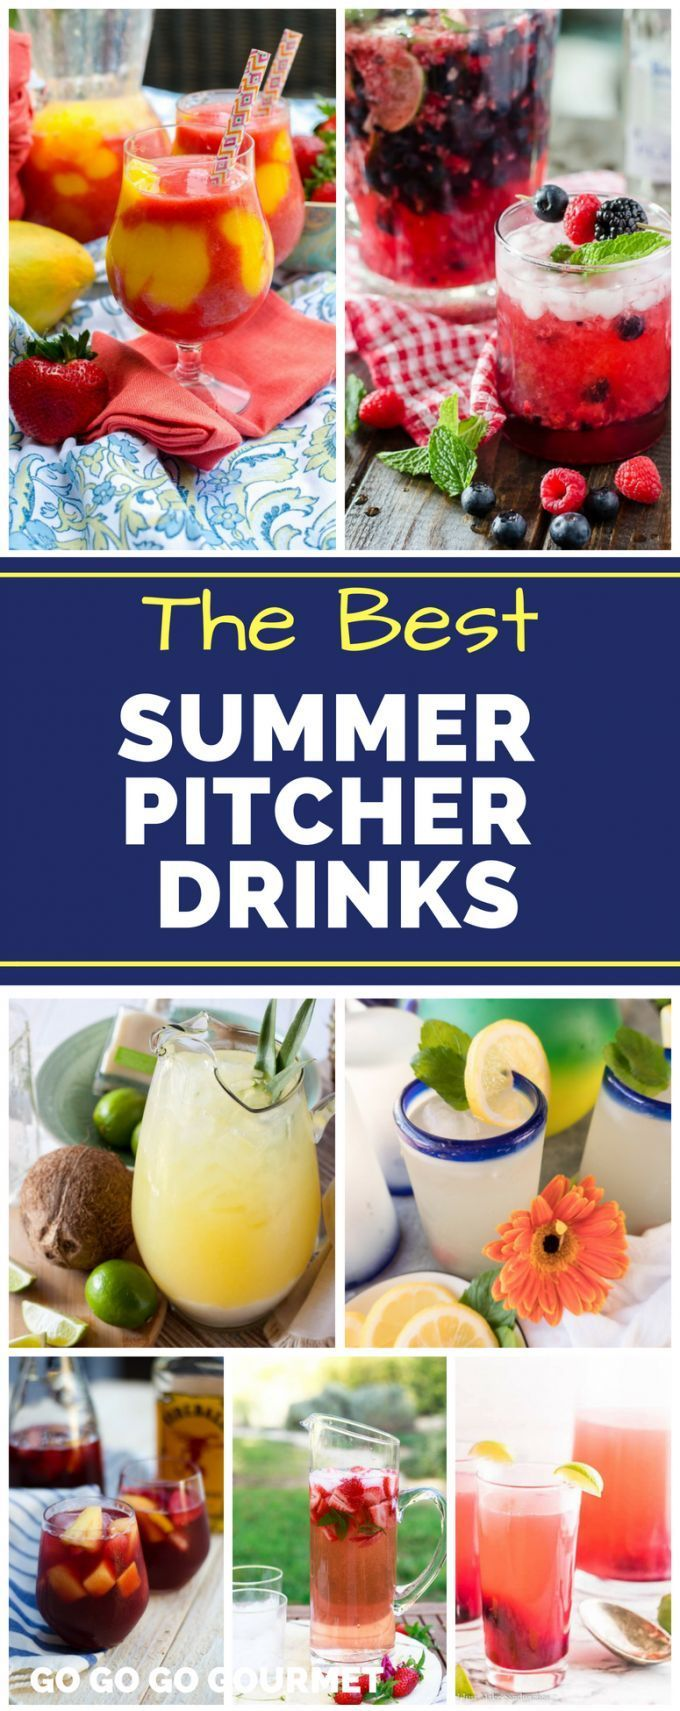 Whether alcoholic or non-alcoholic, these Summer Pitcher Drinks are a great way to serve cocktails for a crowd! Your summer party won't be complete without at least one of these easy recipes! #summerpitcherdrinks #cocktailsforacrowd #easysummercocktails #gogogogourmet #nonalcoholicsummerdrinks